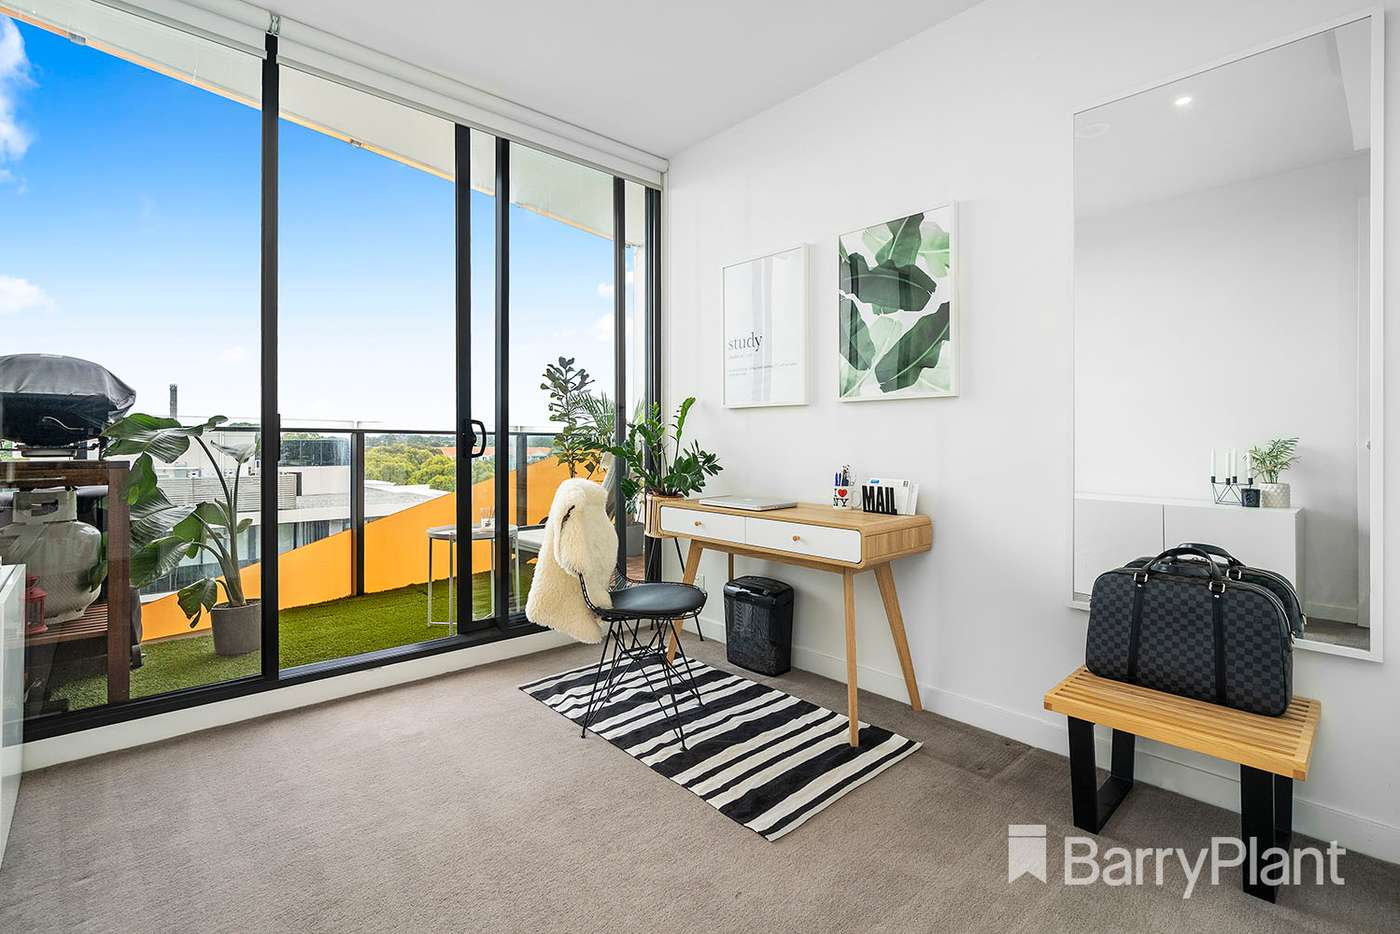 Sixth view of Homely apartment listing, 612/222 Bay Road, Sandringham VIC 3191